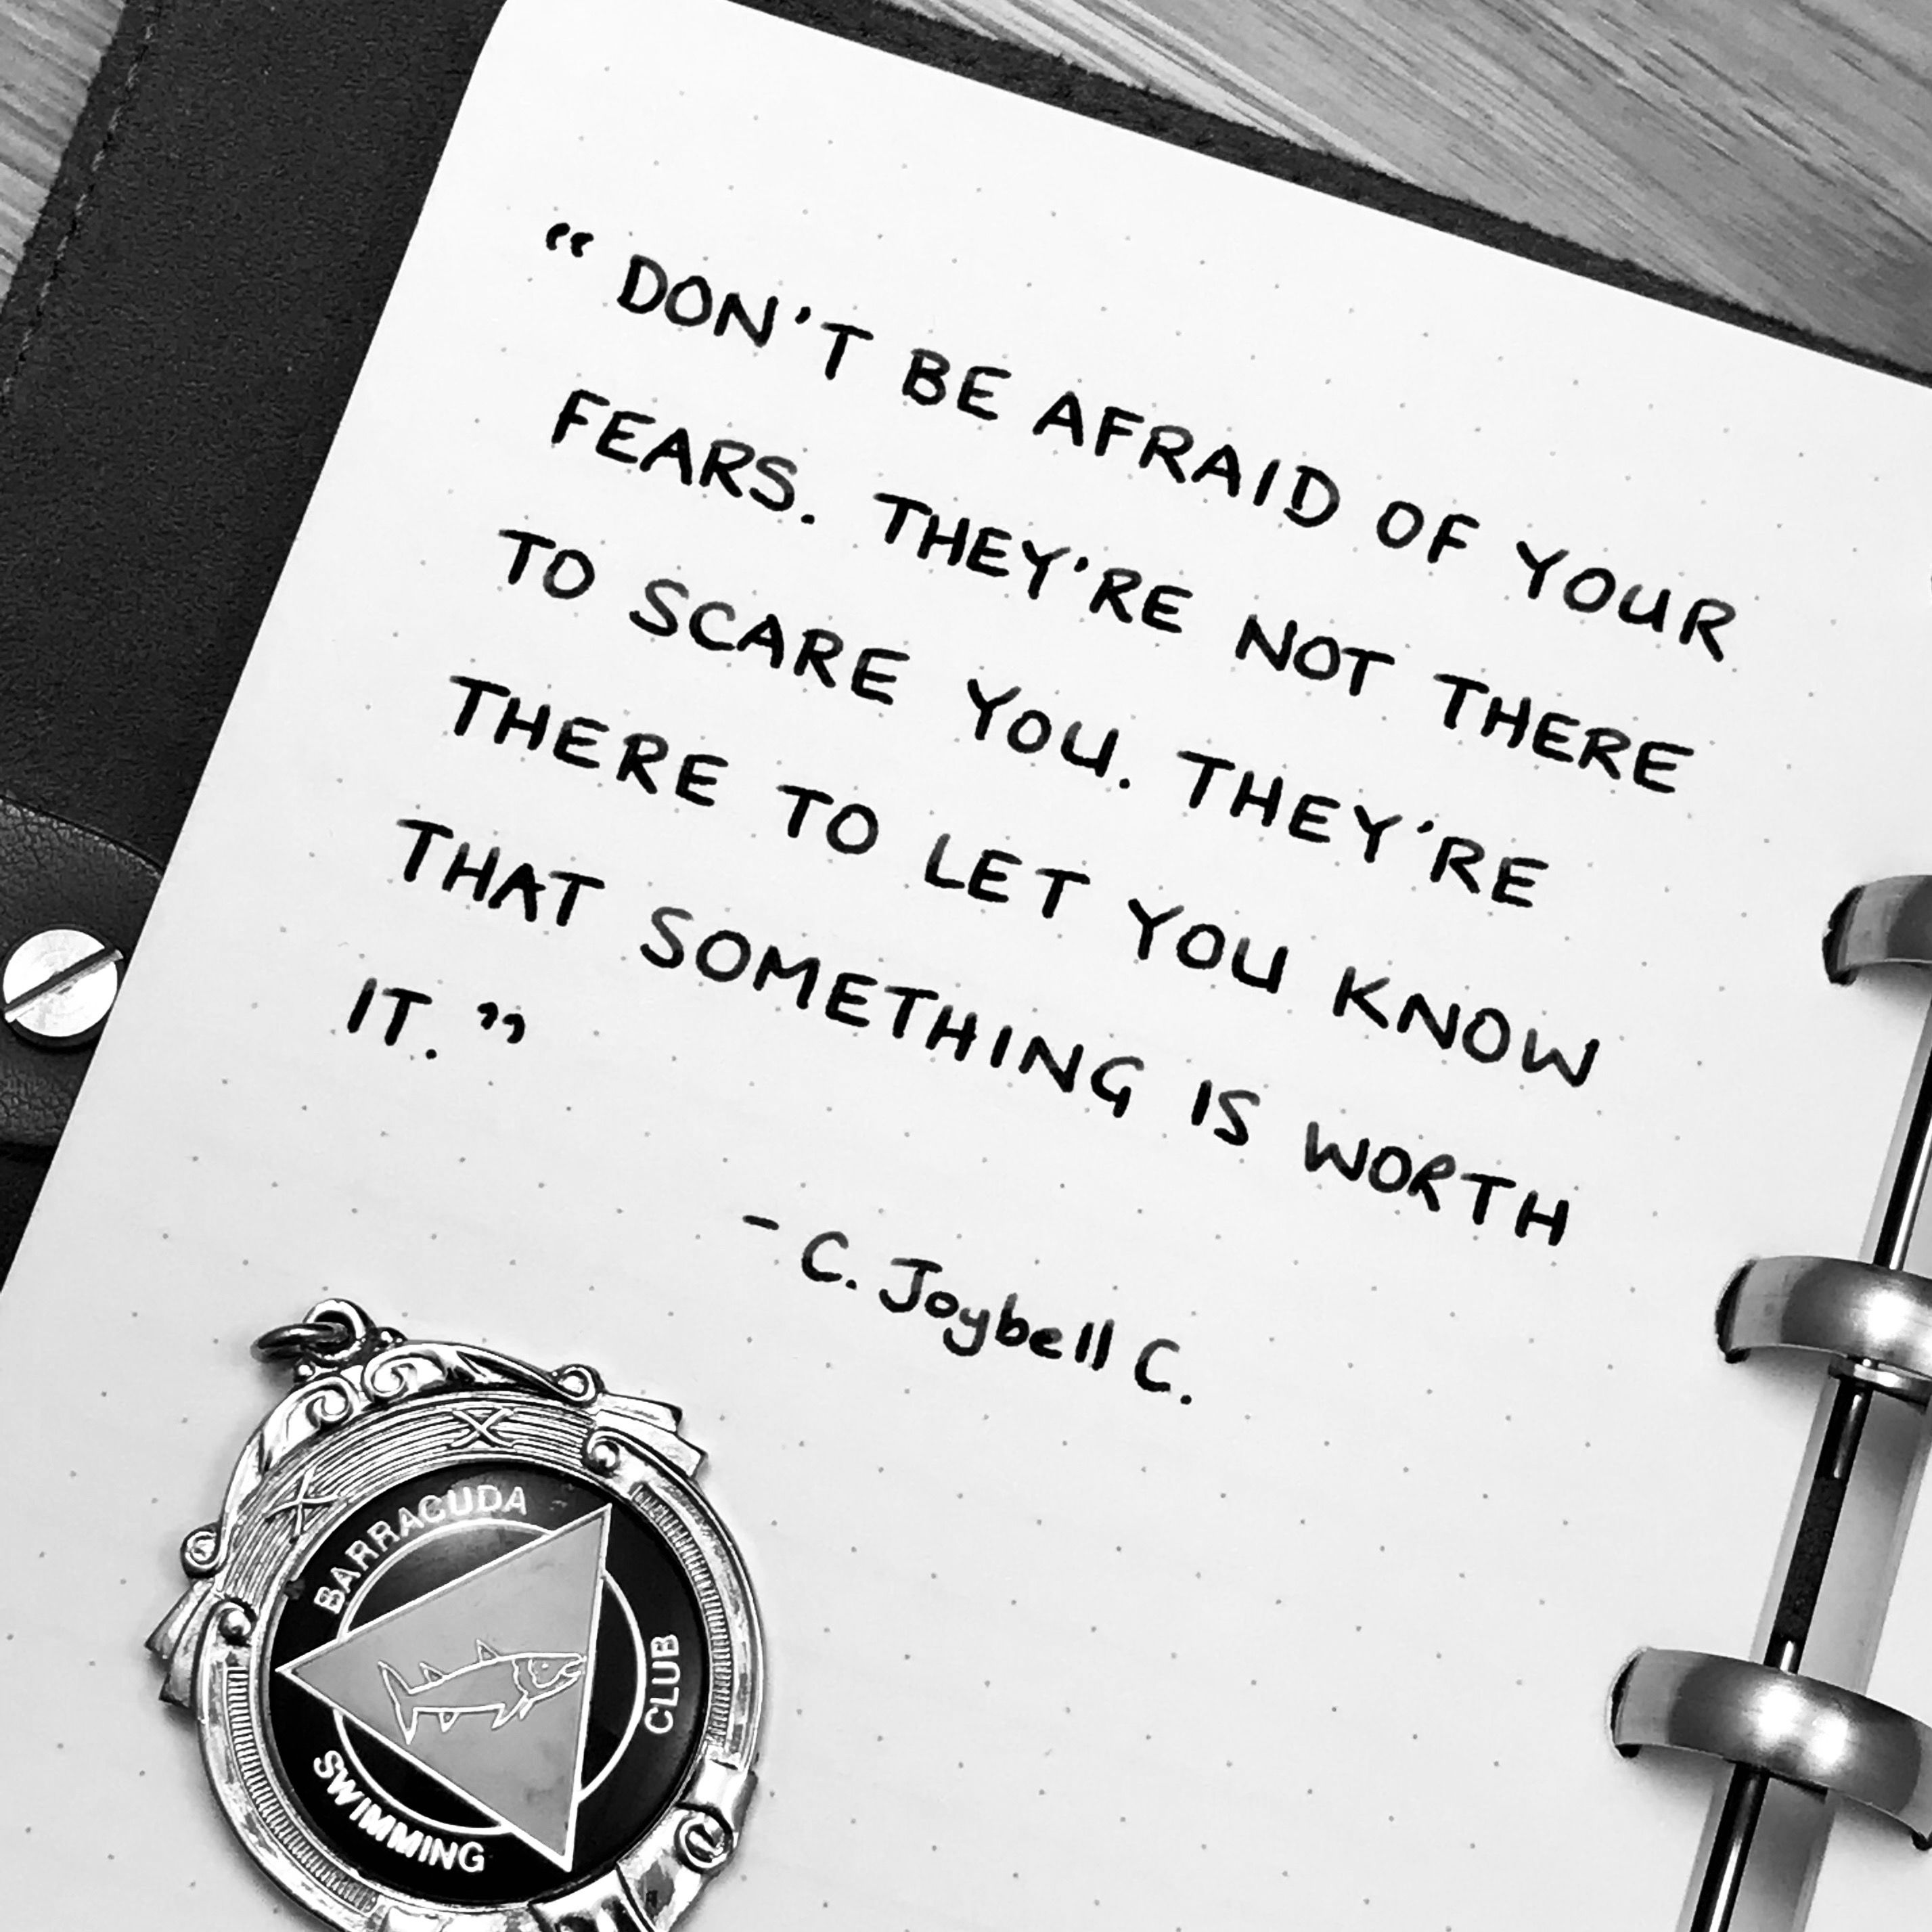 Don T Be Afraid Of Your Fears They Re Not There To Scare You They Re There To Let You Know